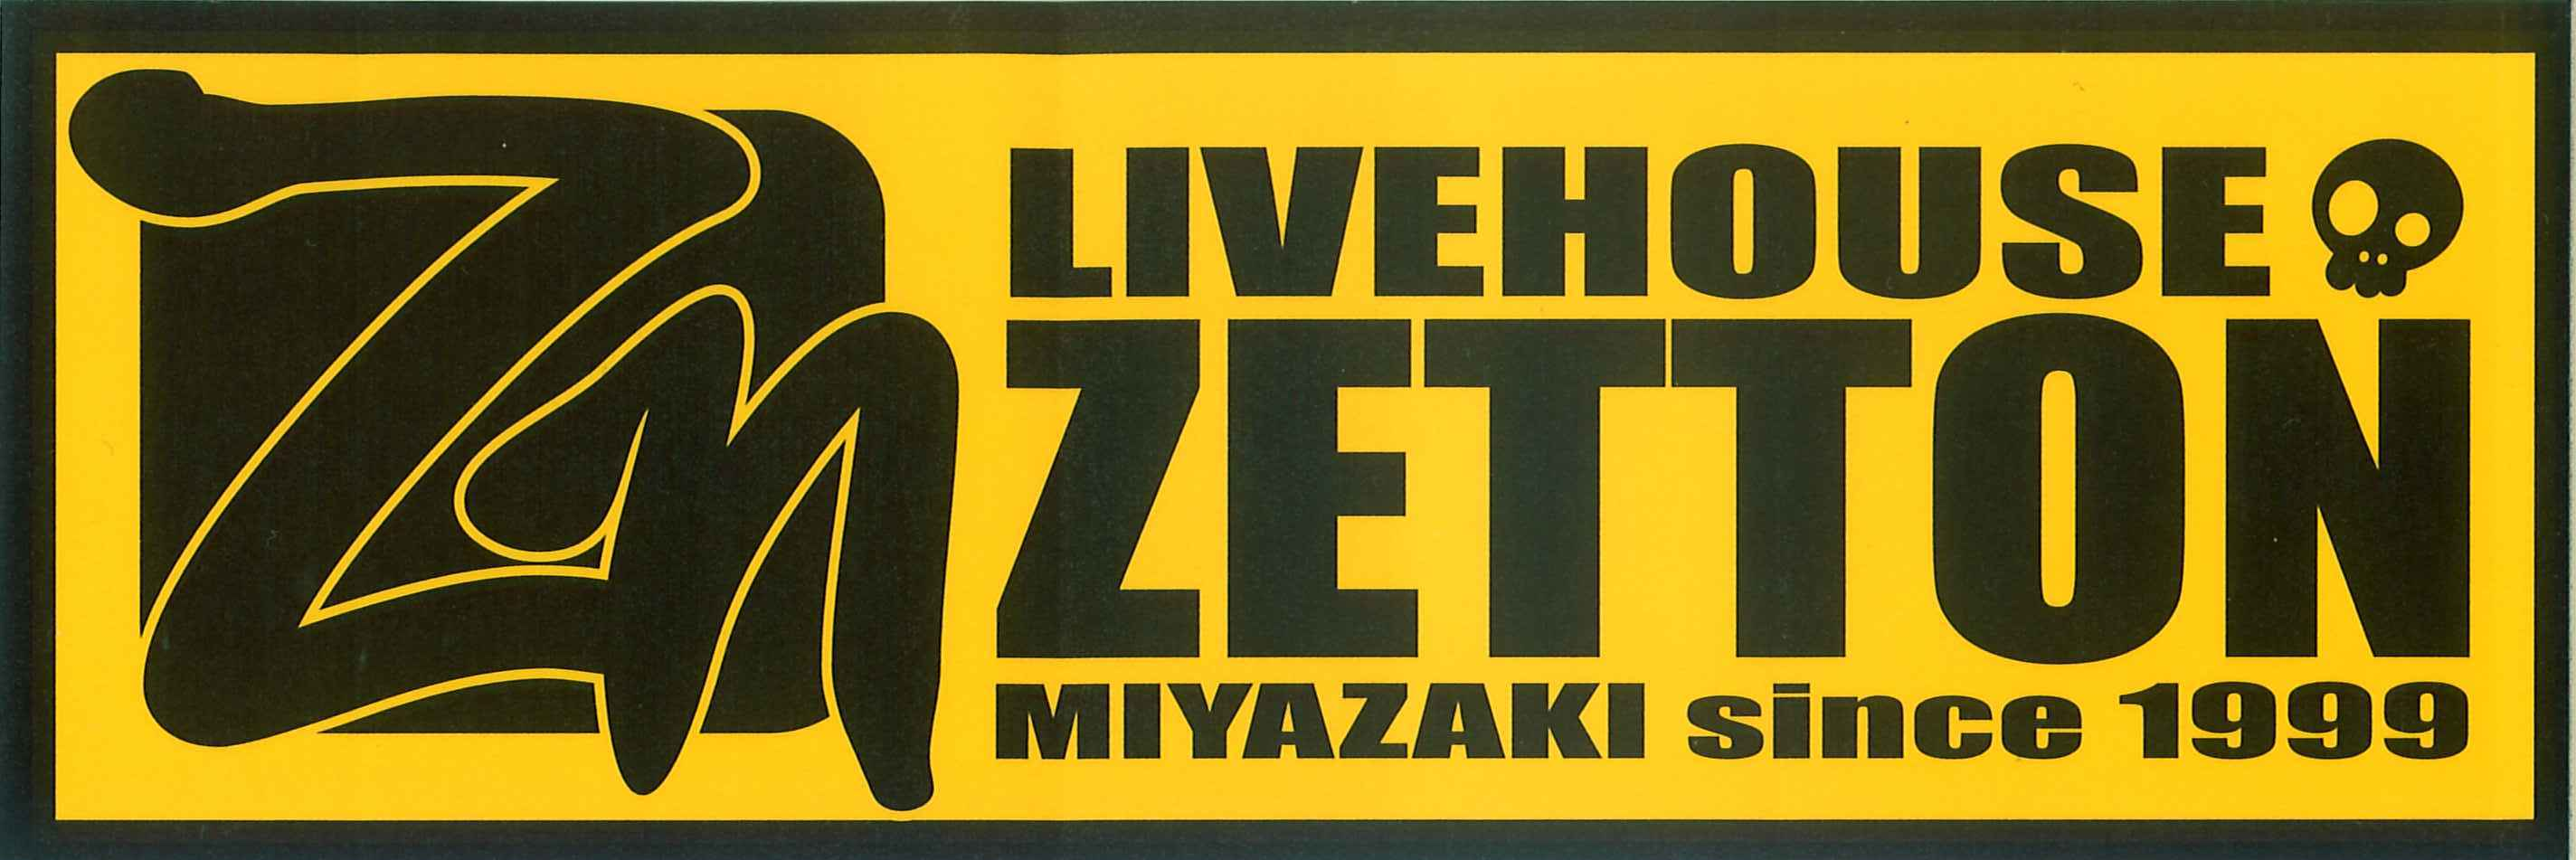 LIVE HOUSE ZETTON